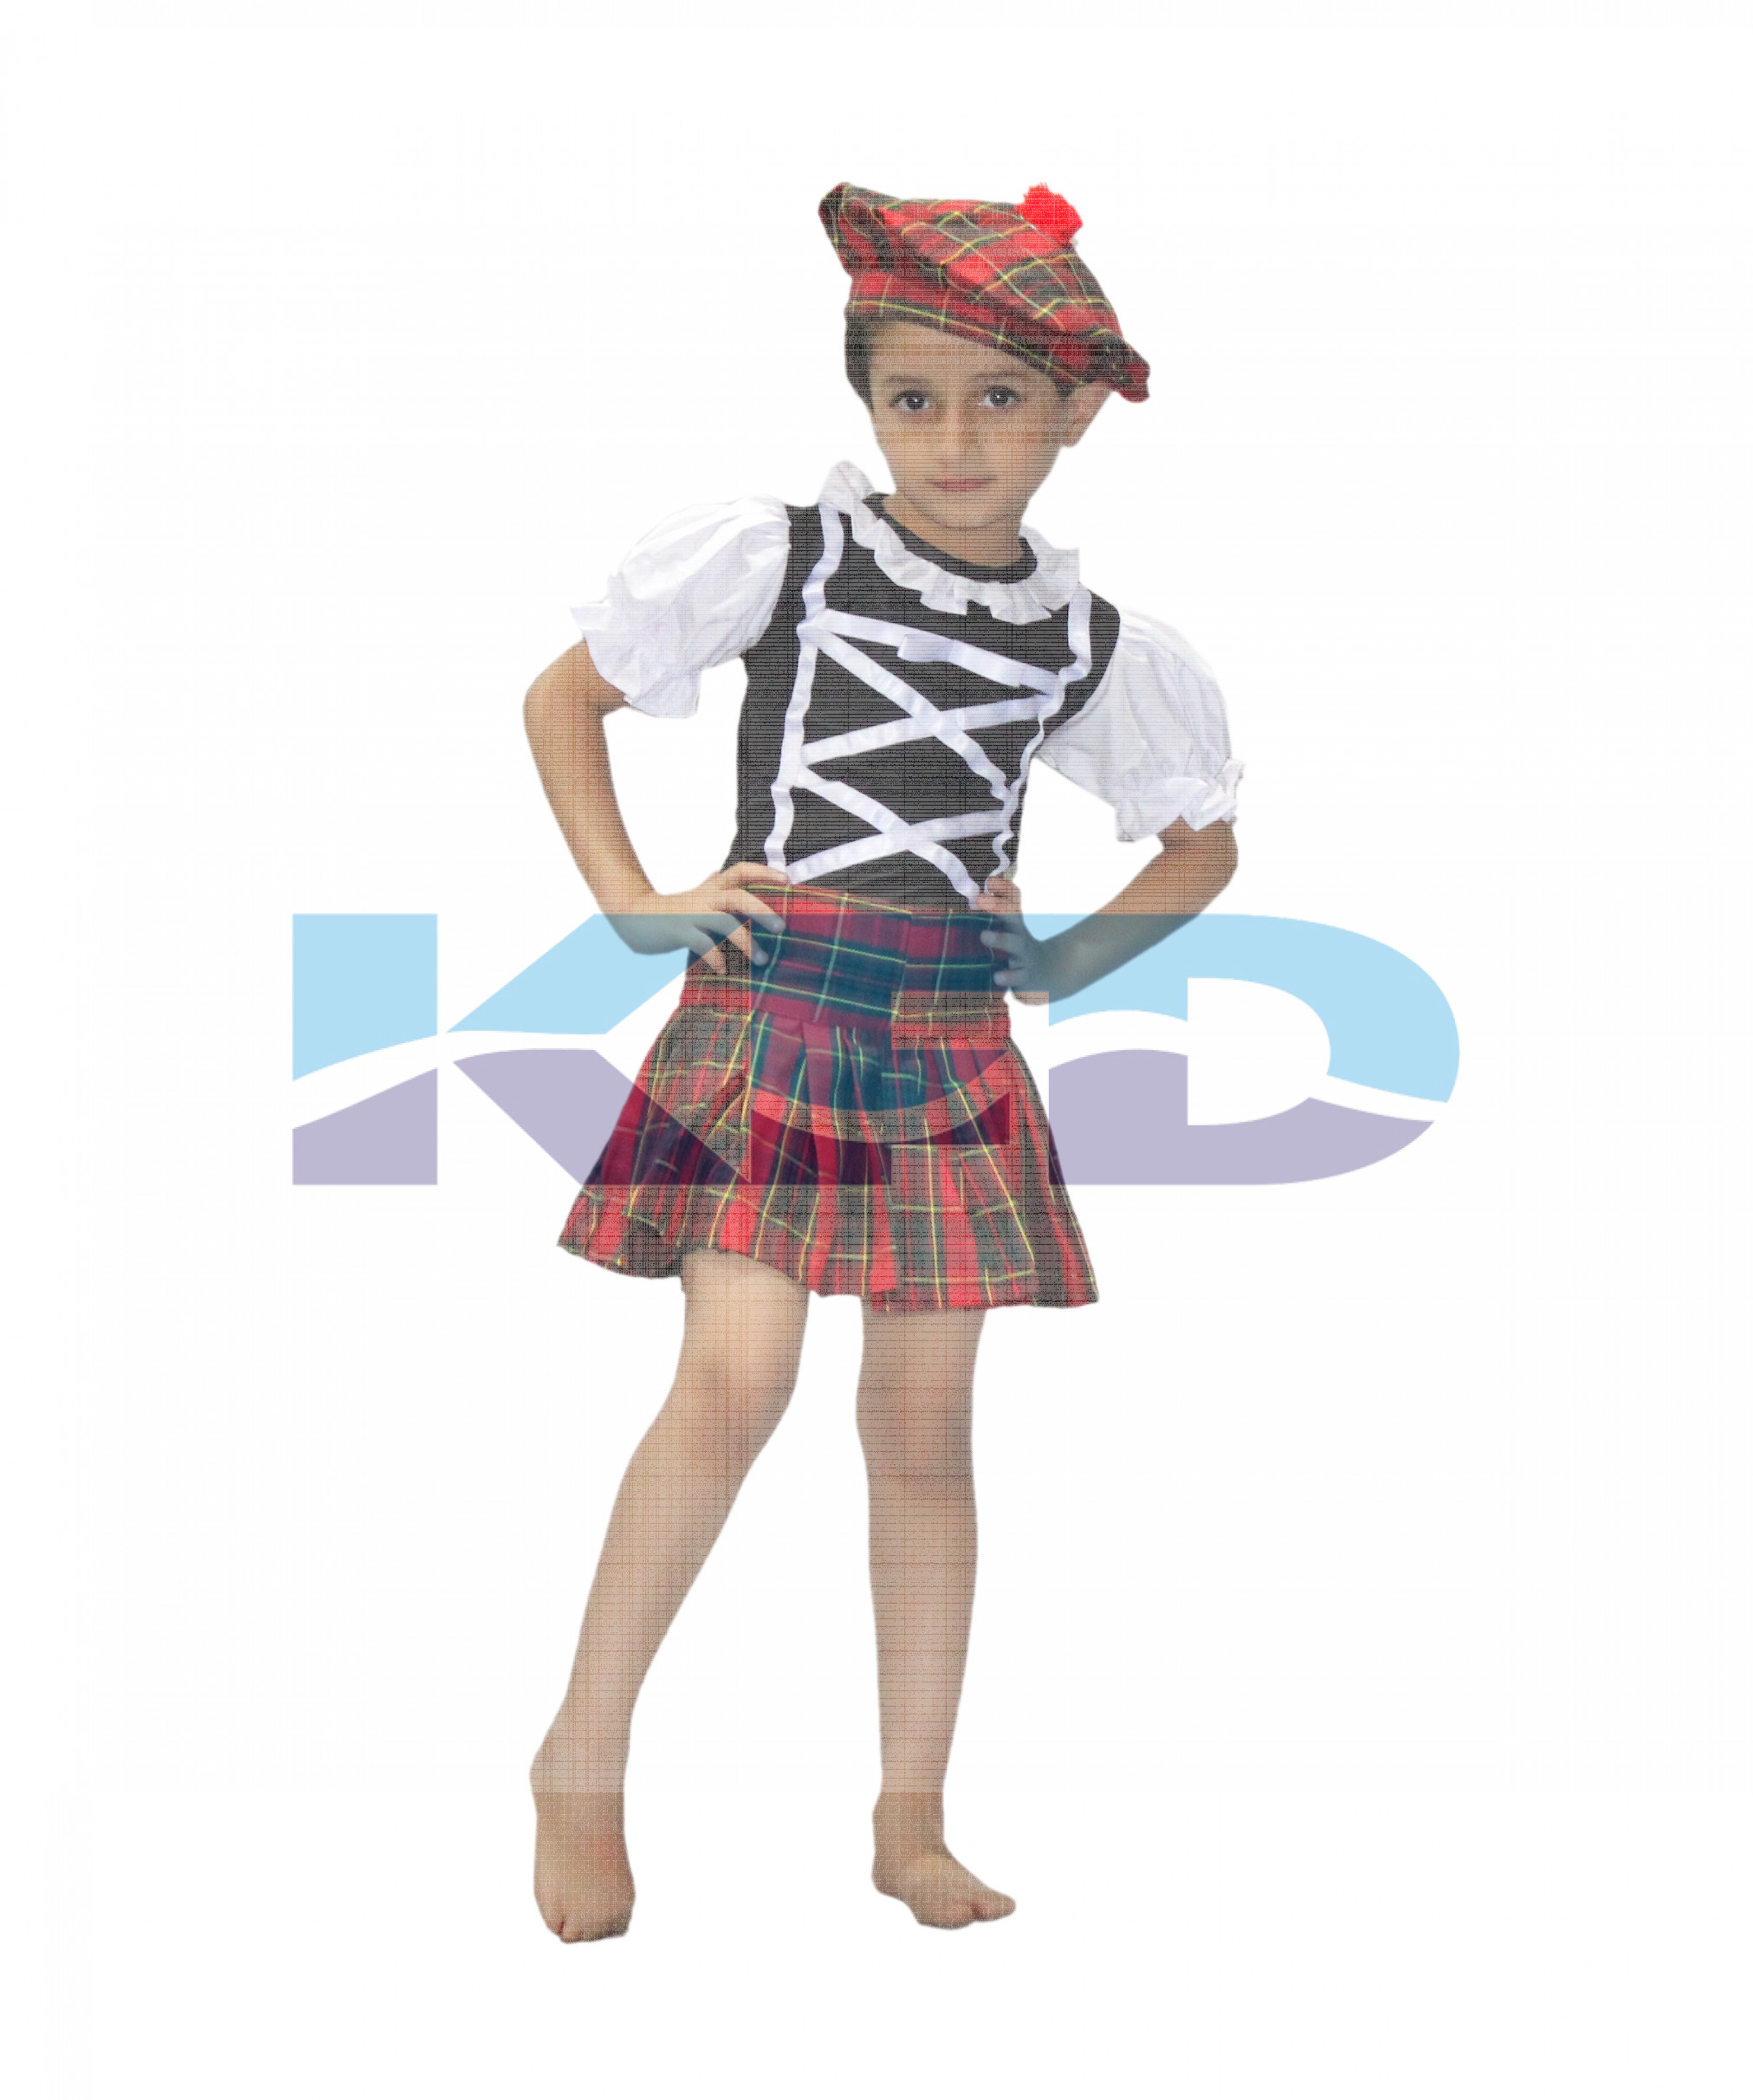 Scottish Girl/Traditional Costume/Tartan Costume For Girls/ Lassie Costume/Advnture Costume/School Annual function/Theme Party/Competition/Stage Shows Dress